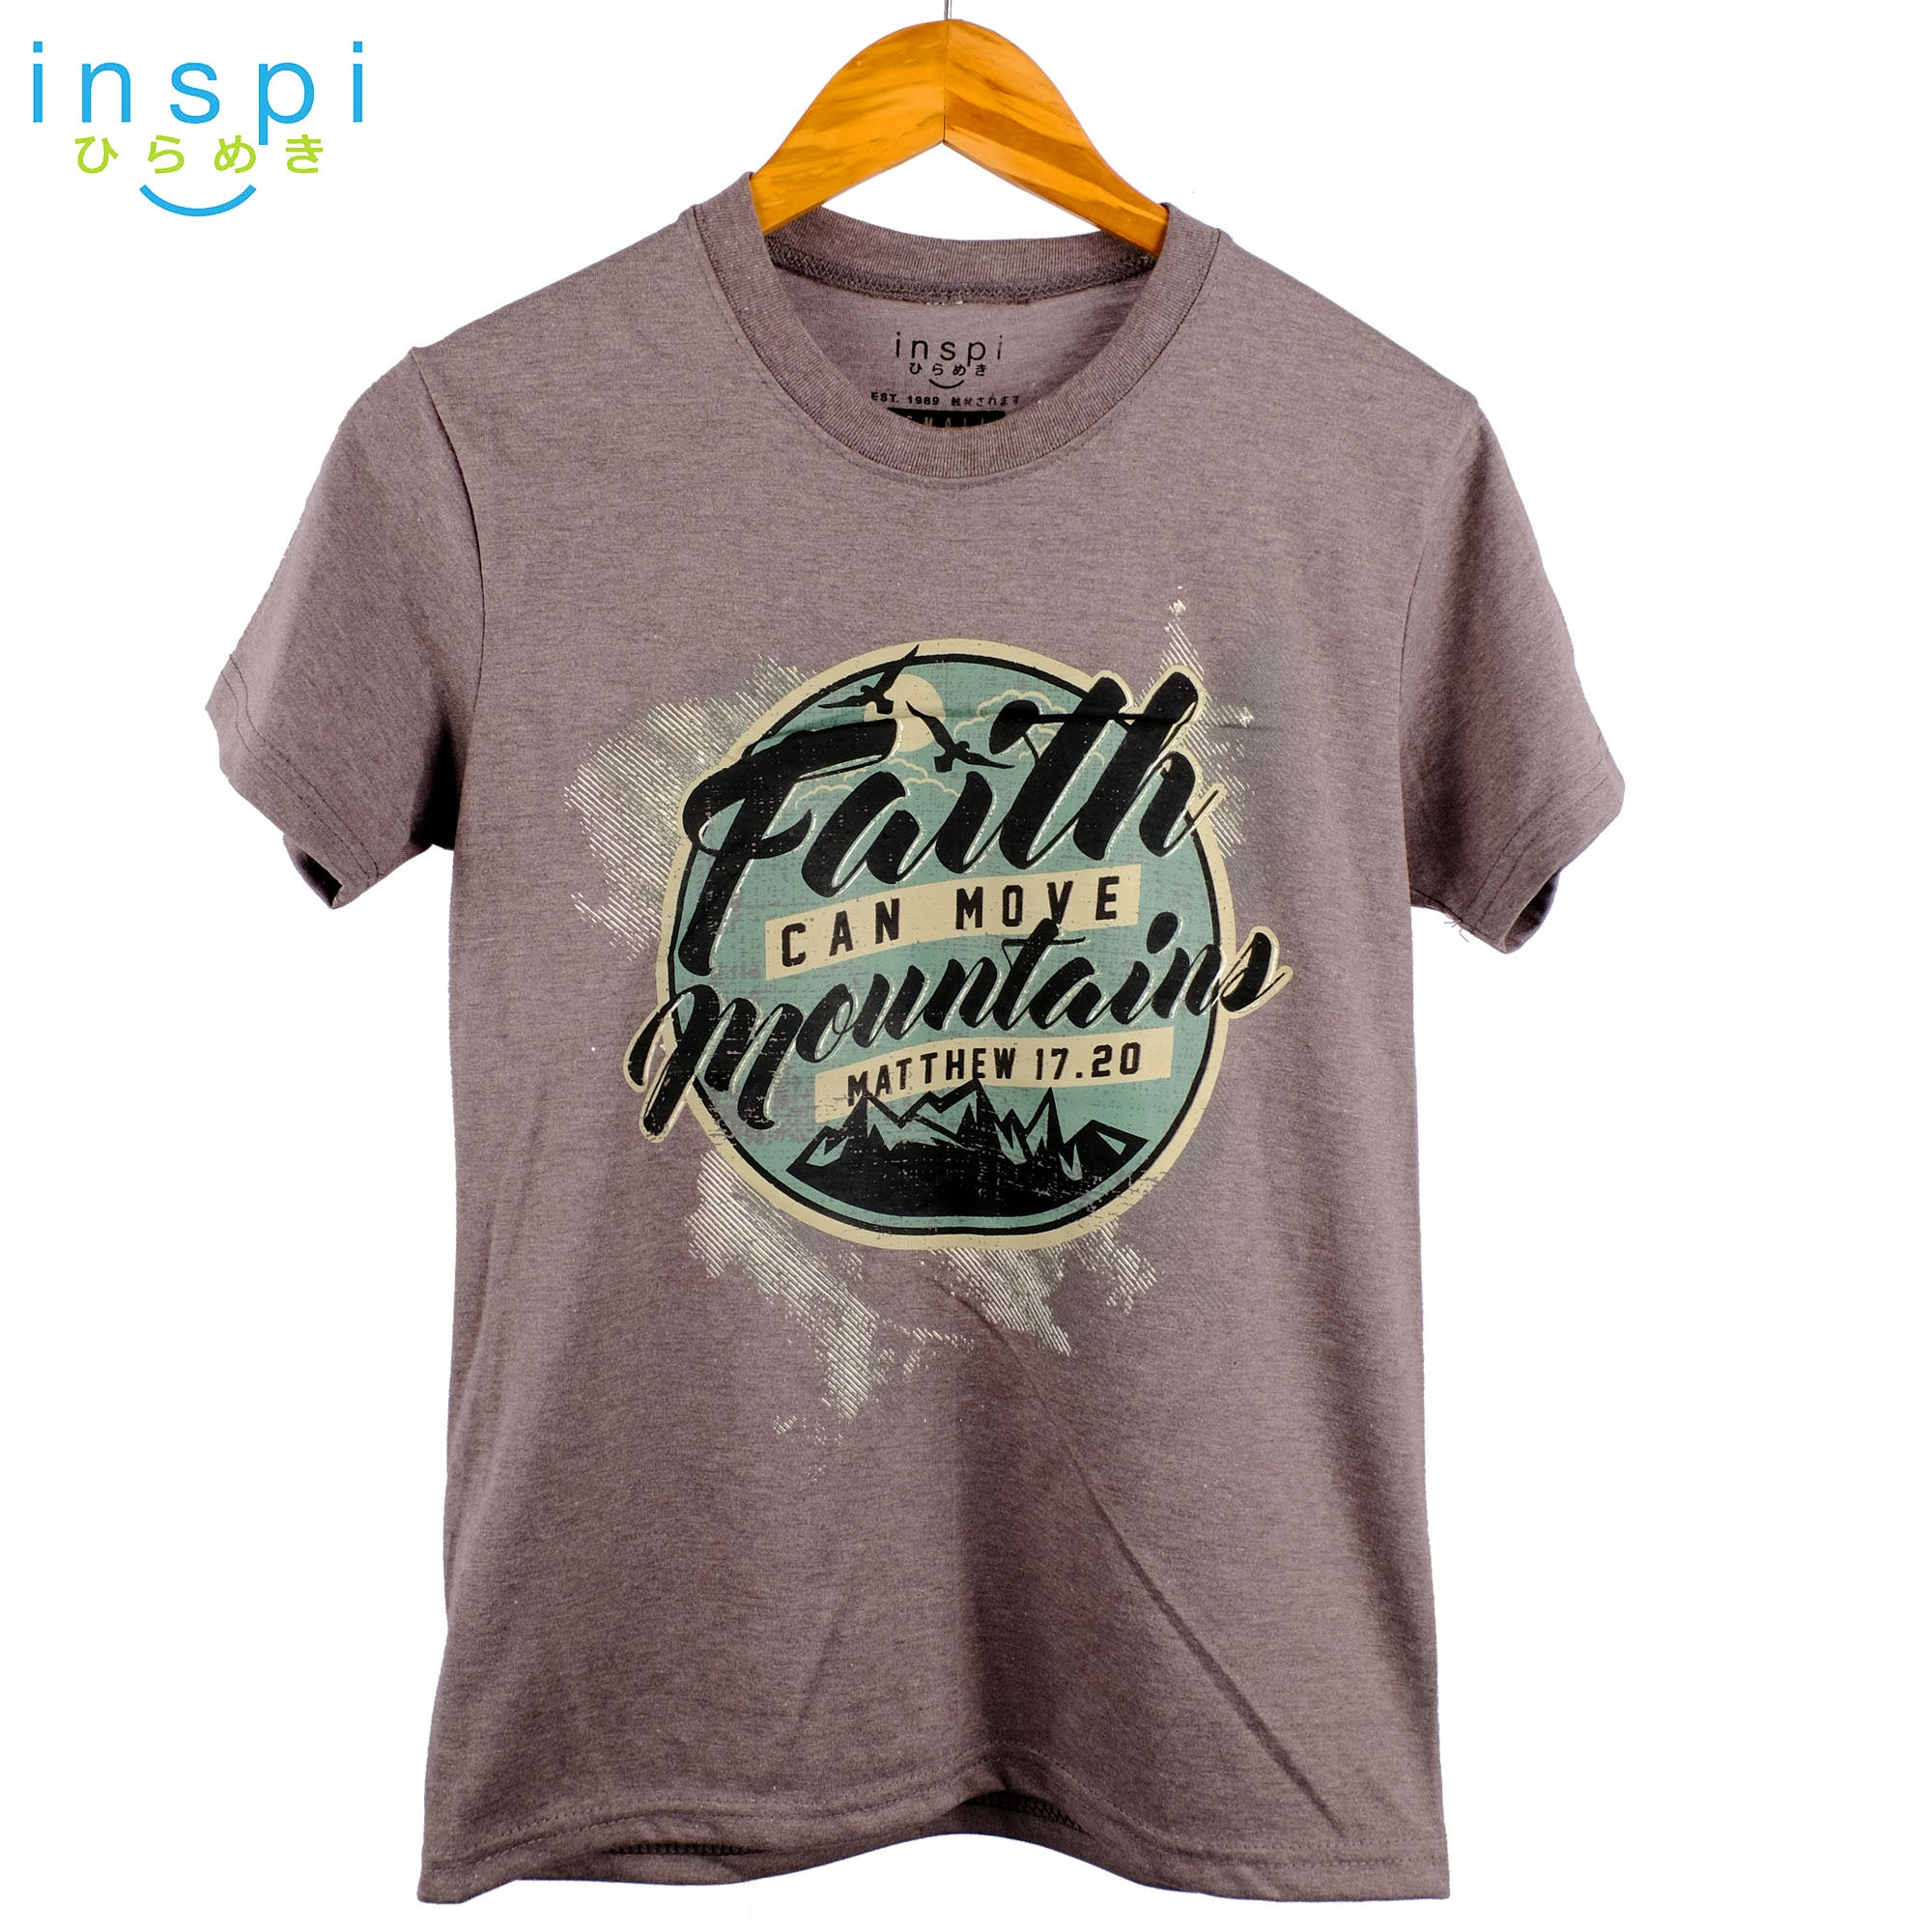 INSPI Shirt Faith can Move Graphic Tshirt in Dark Grey